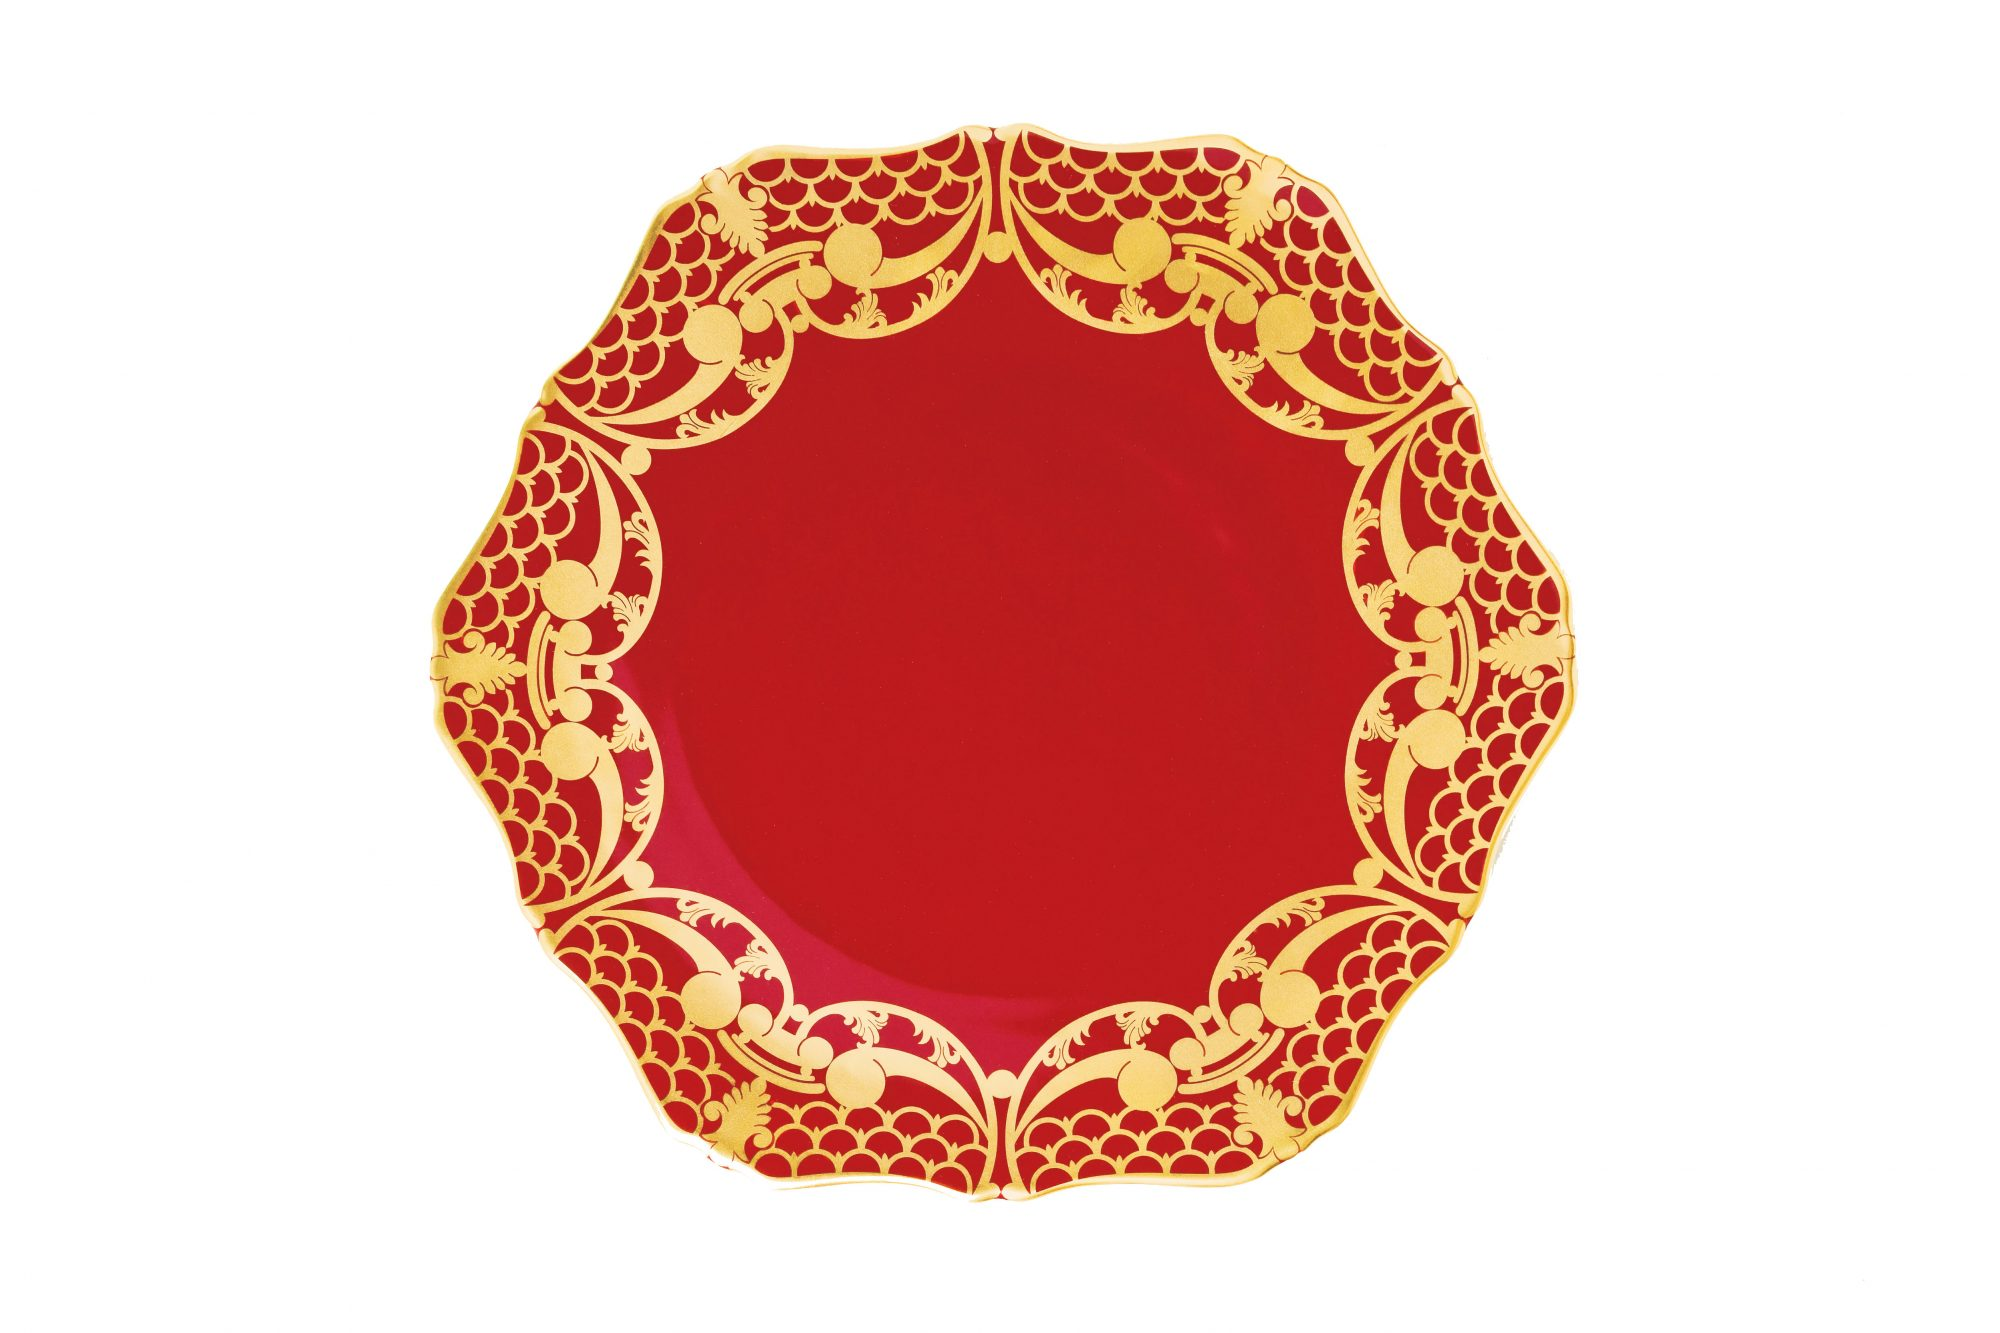 Alencon Rouge Christmas China